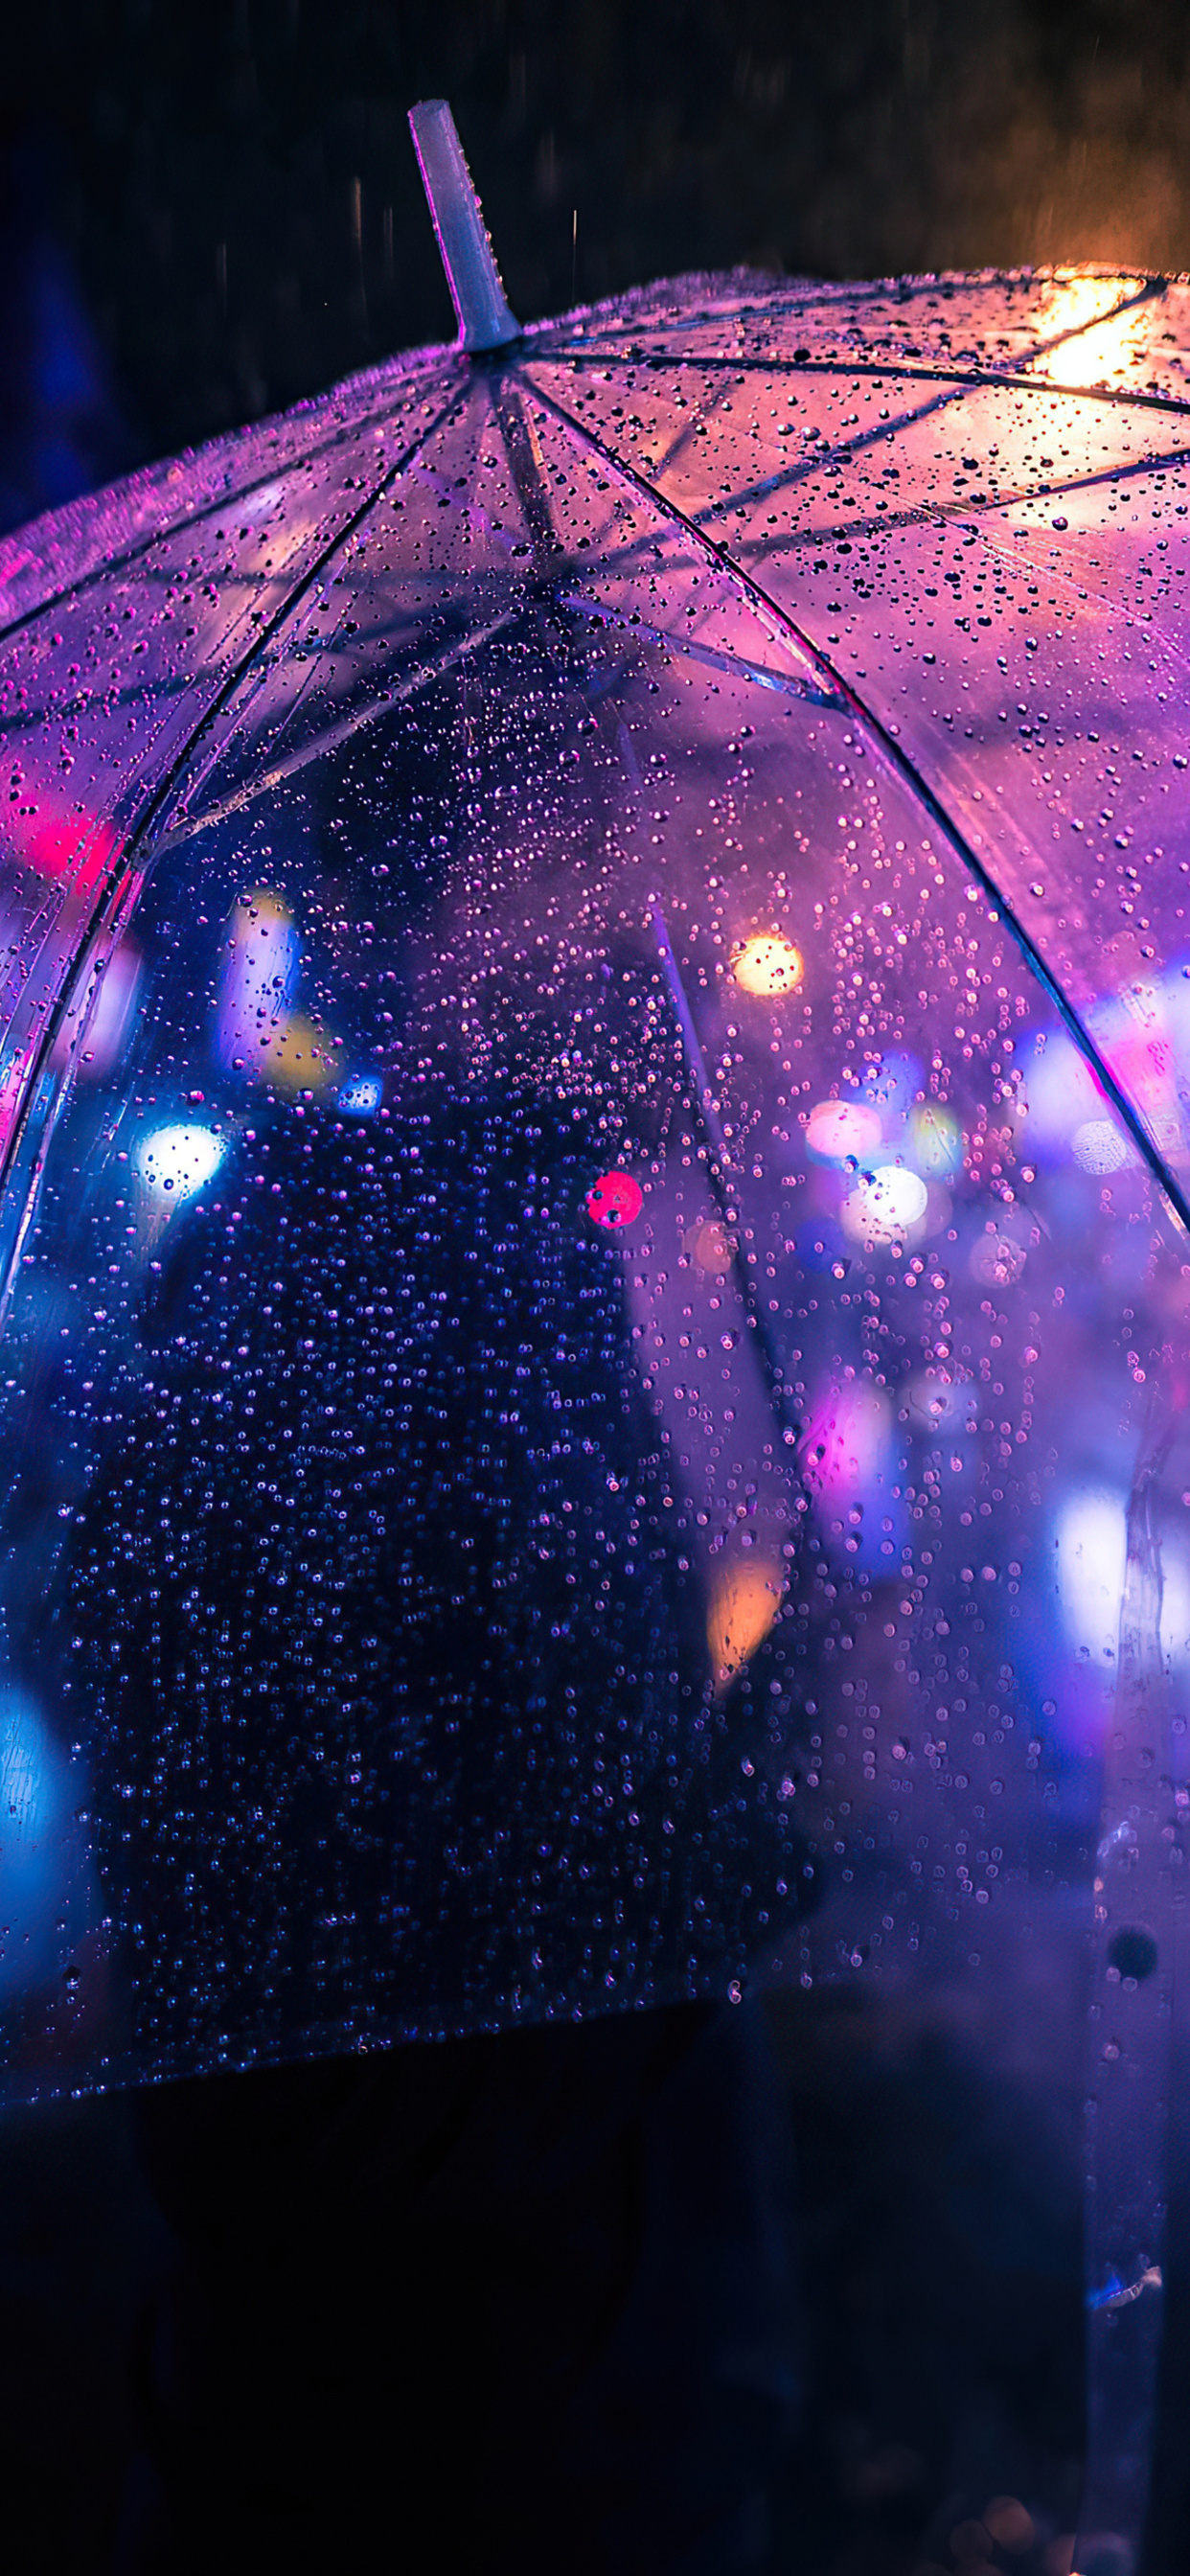 closeup-umbrella-neon-night-photography-4k-fn.jpg